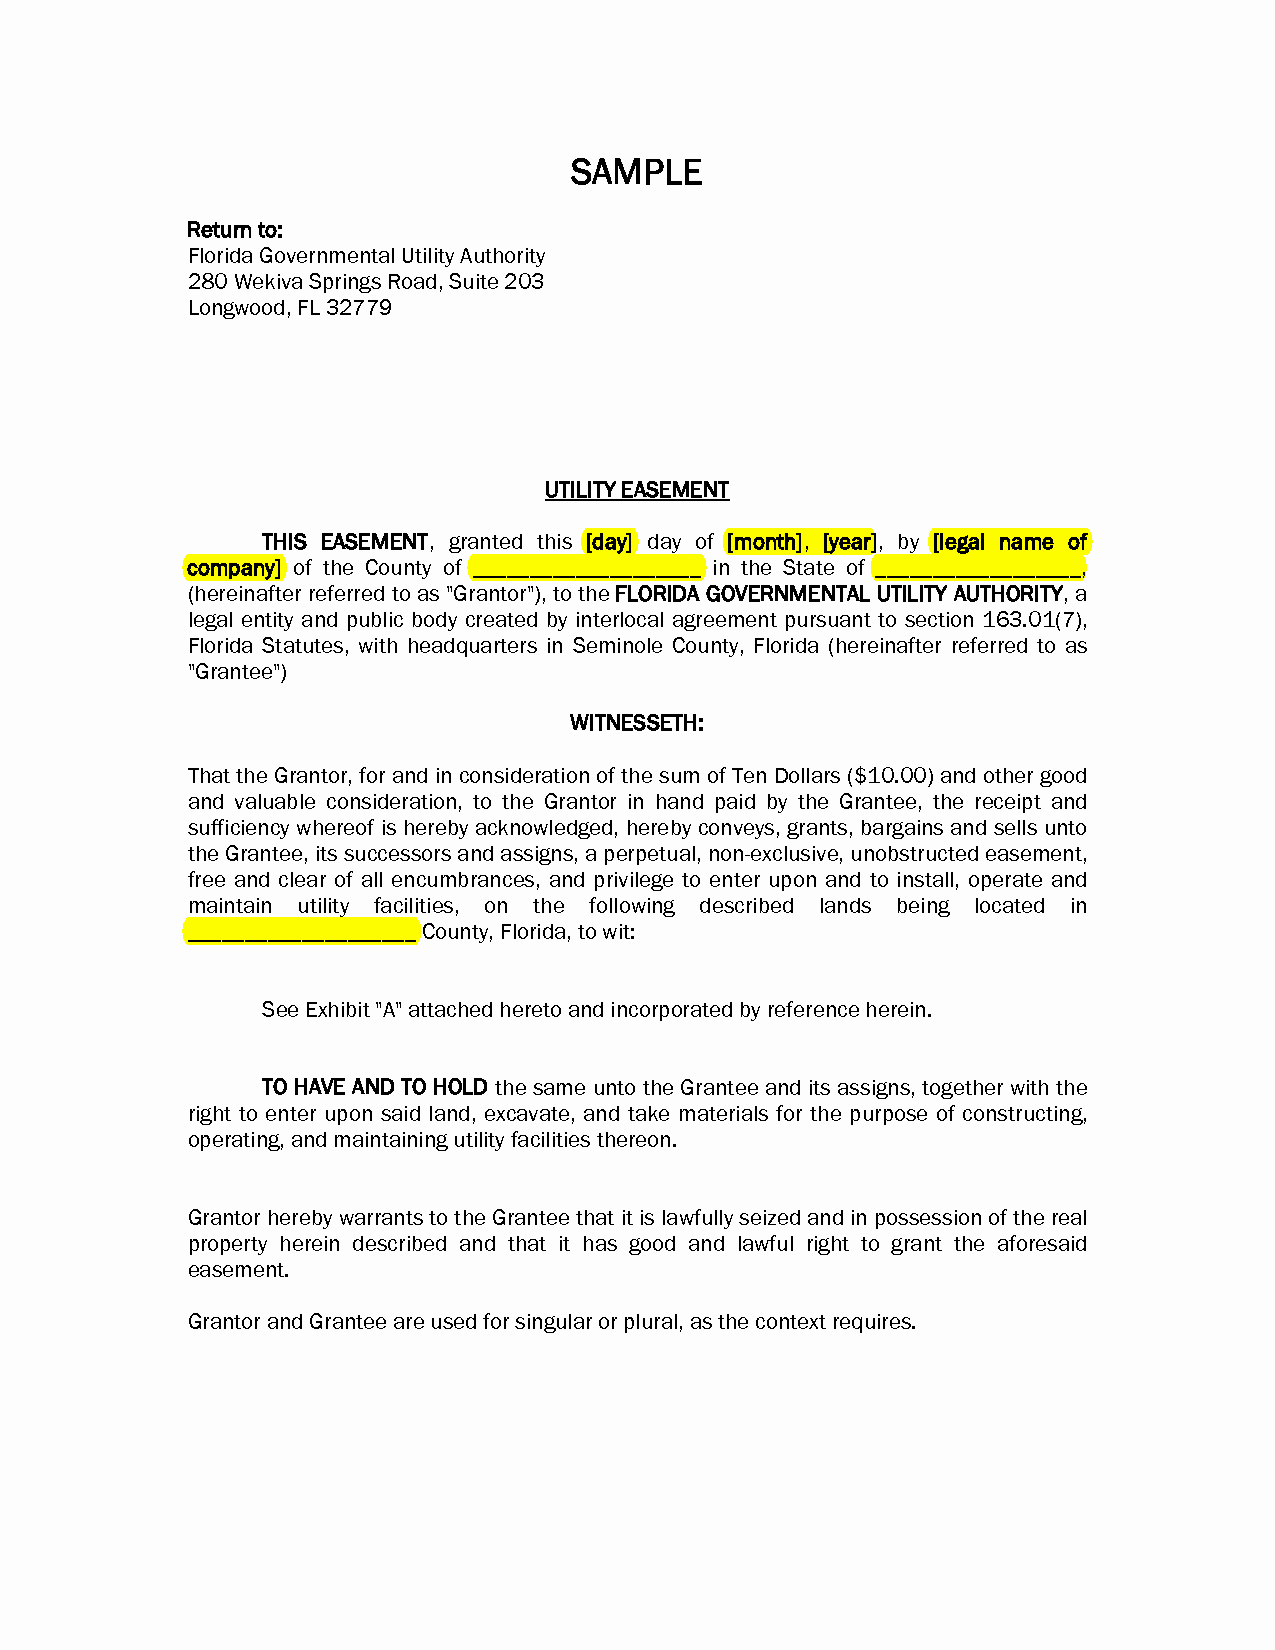 Sample Utility Easement Agreement Best Of Road and Utility Easement Letter Of Agreement Sample Pdf